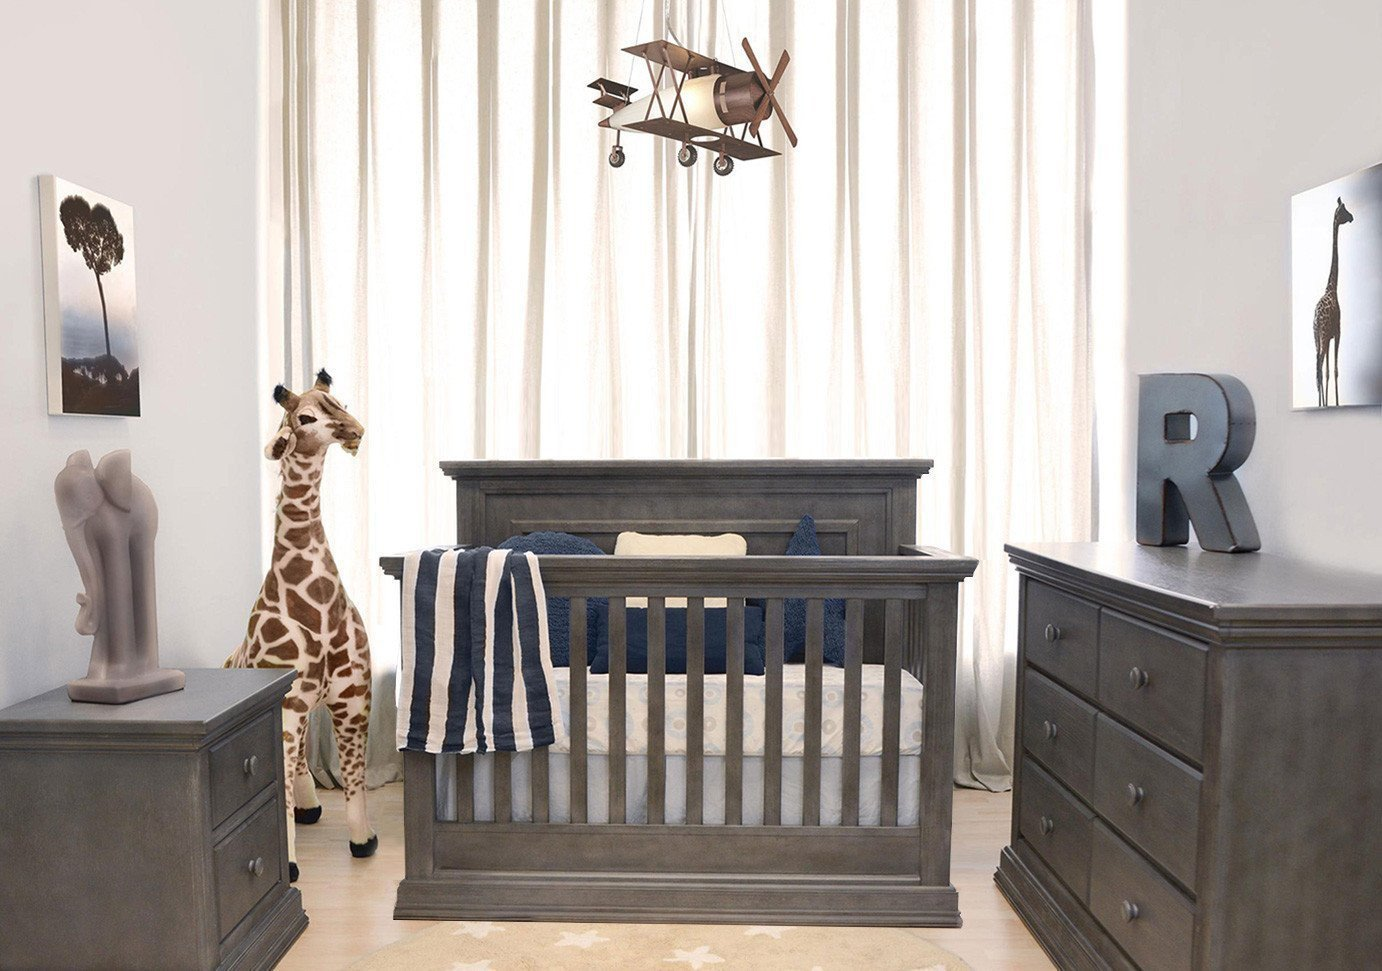 Shop our KIDS LIGHTING SALE and save on nursery lighting, girls bedroom lighting, and boys lighting